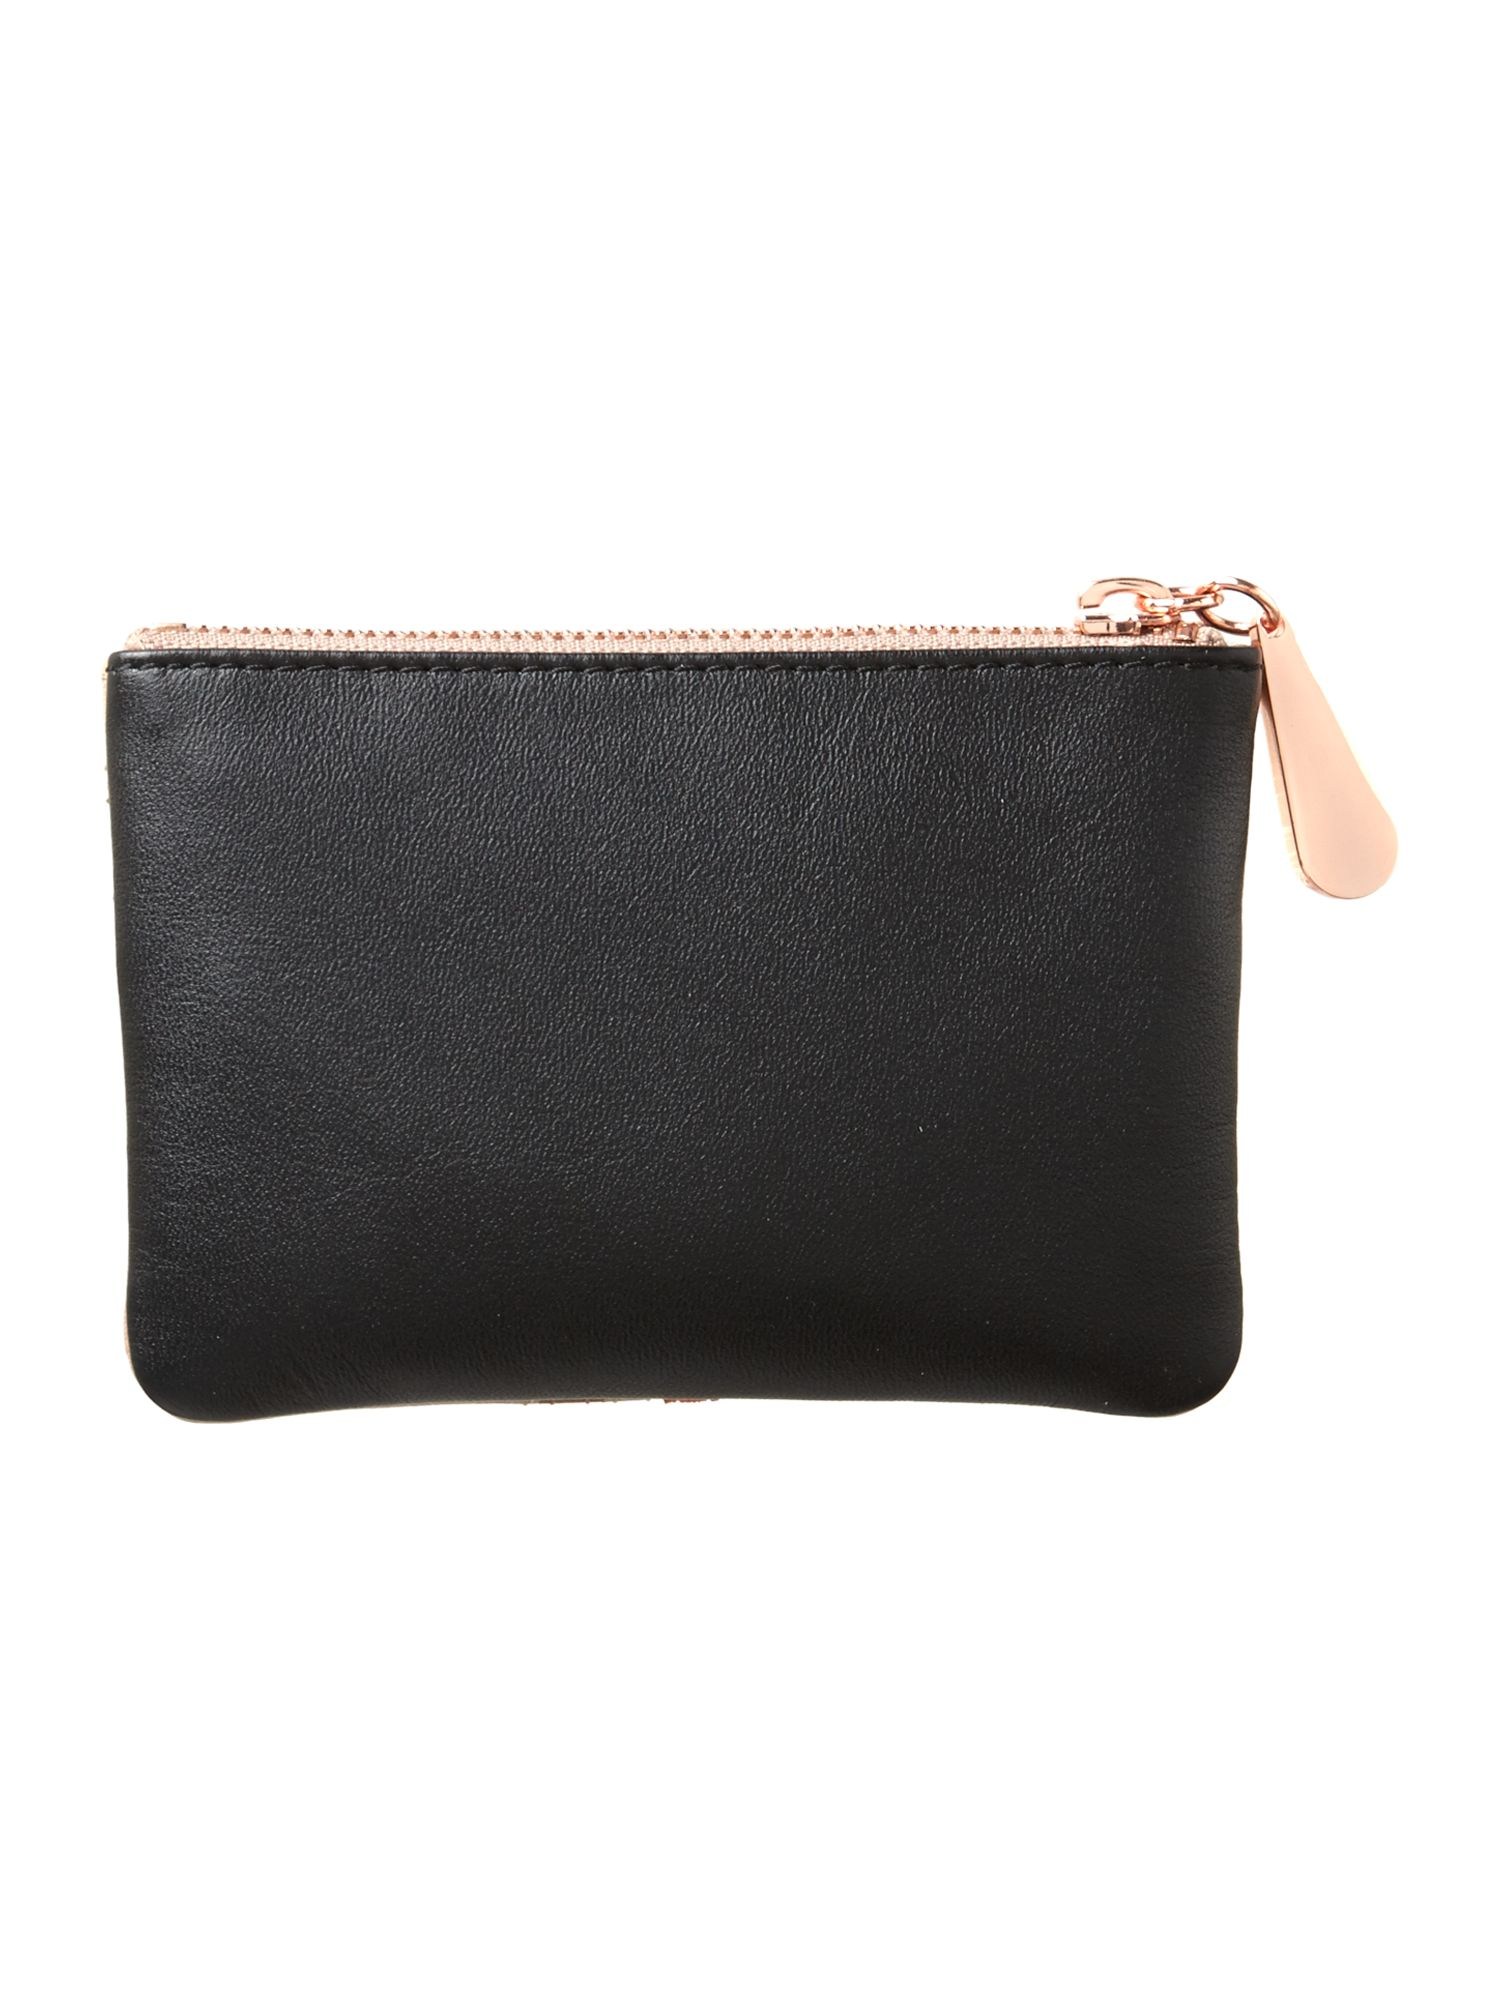 Roxy coin purse